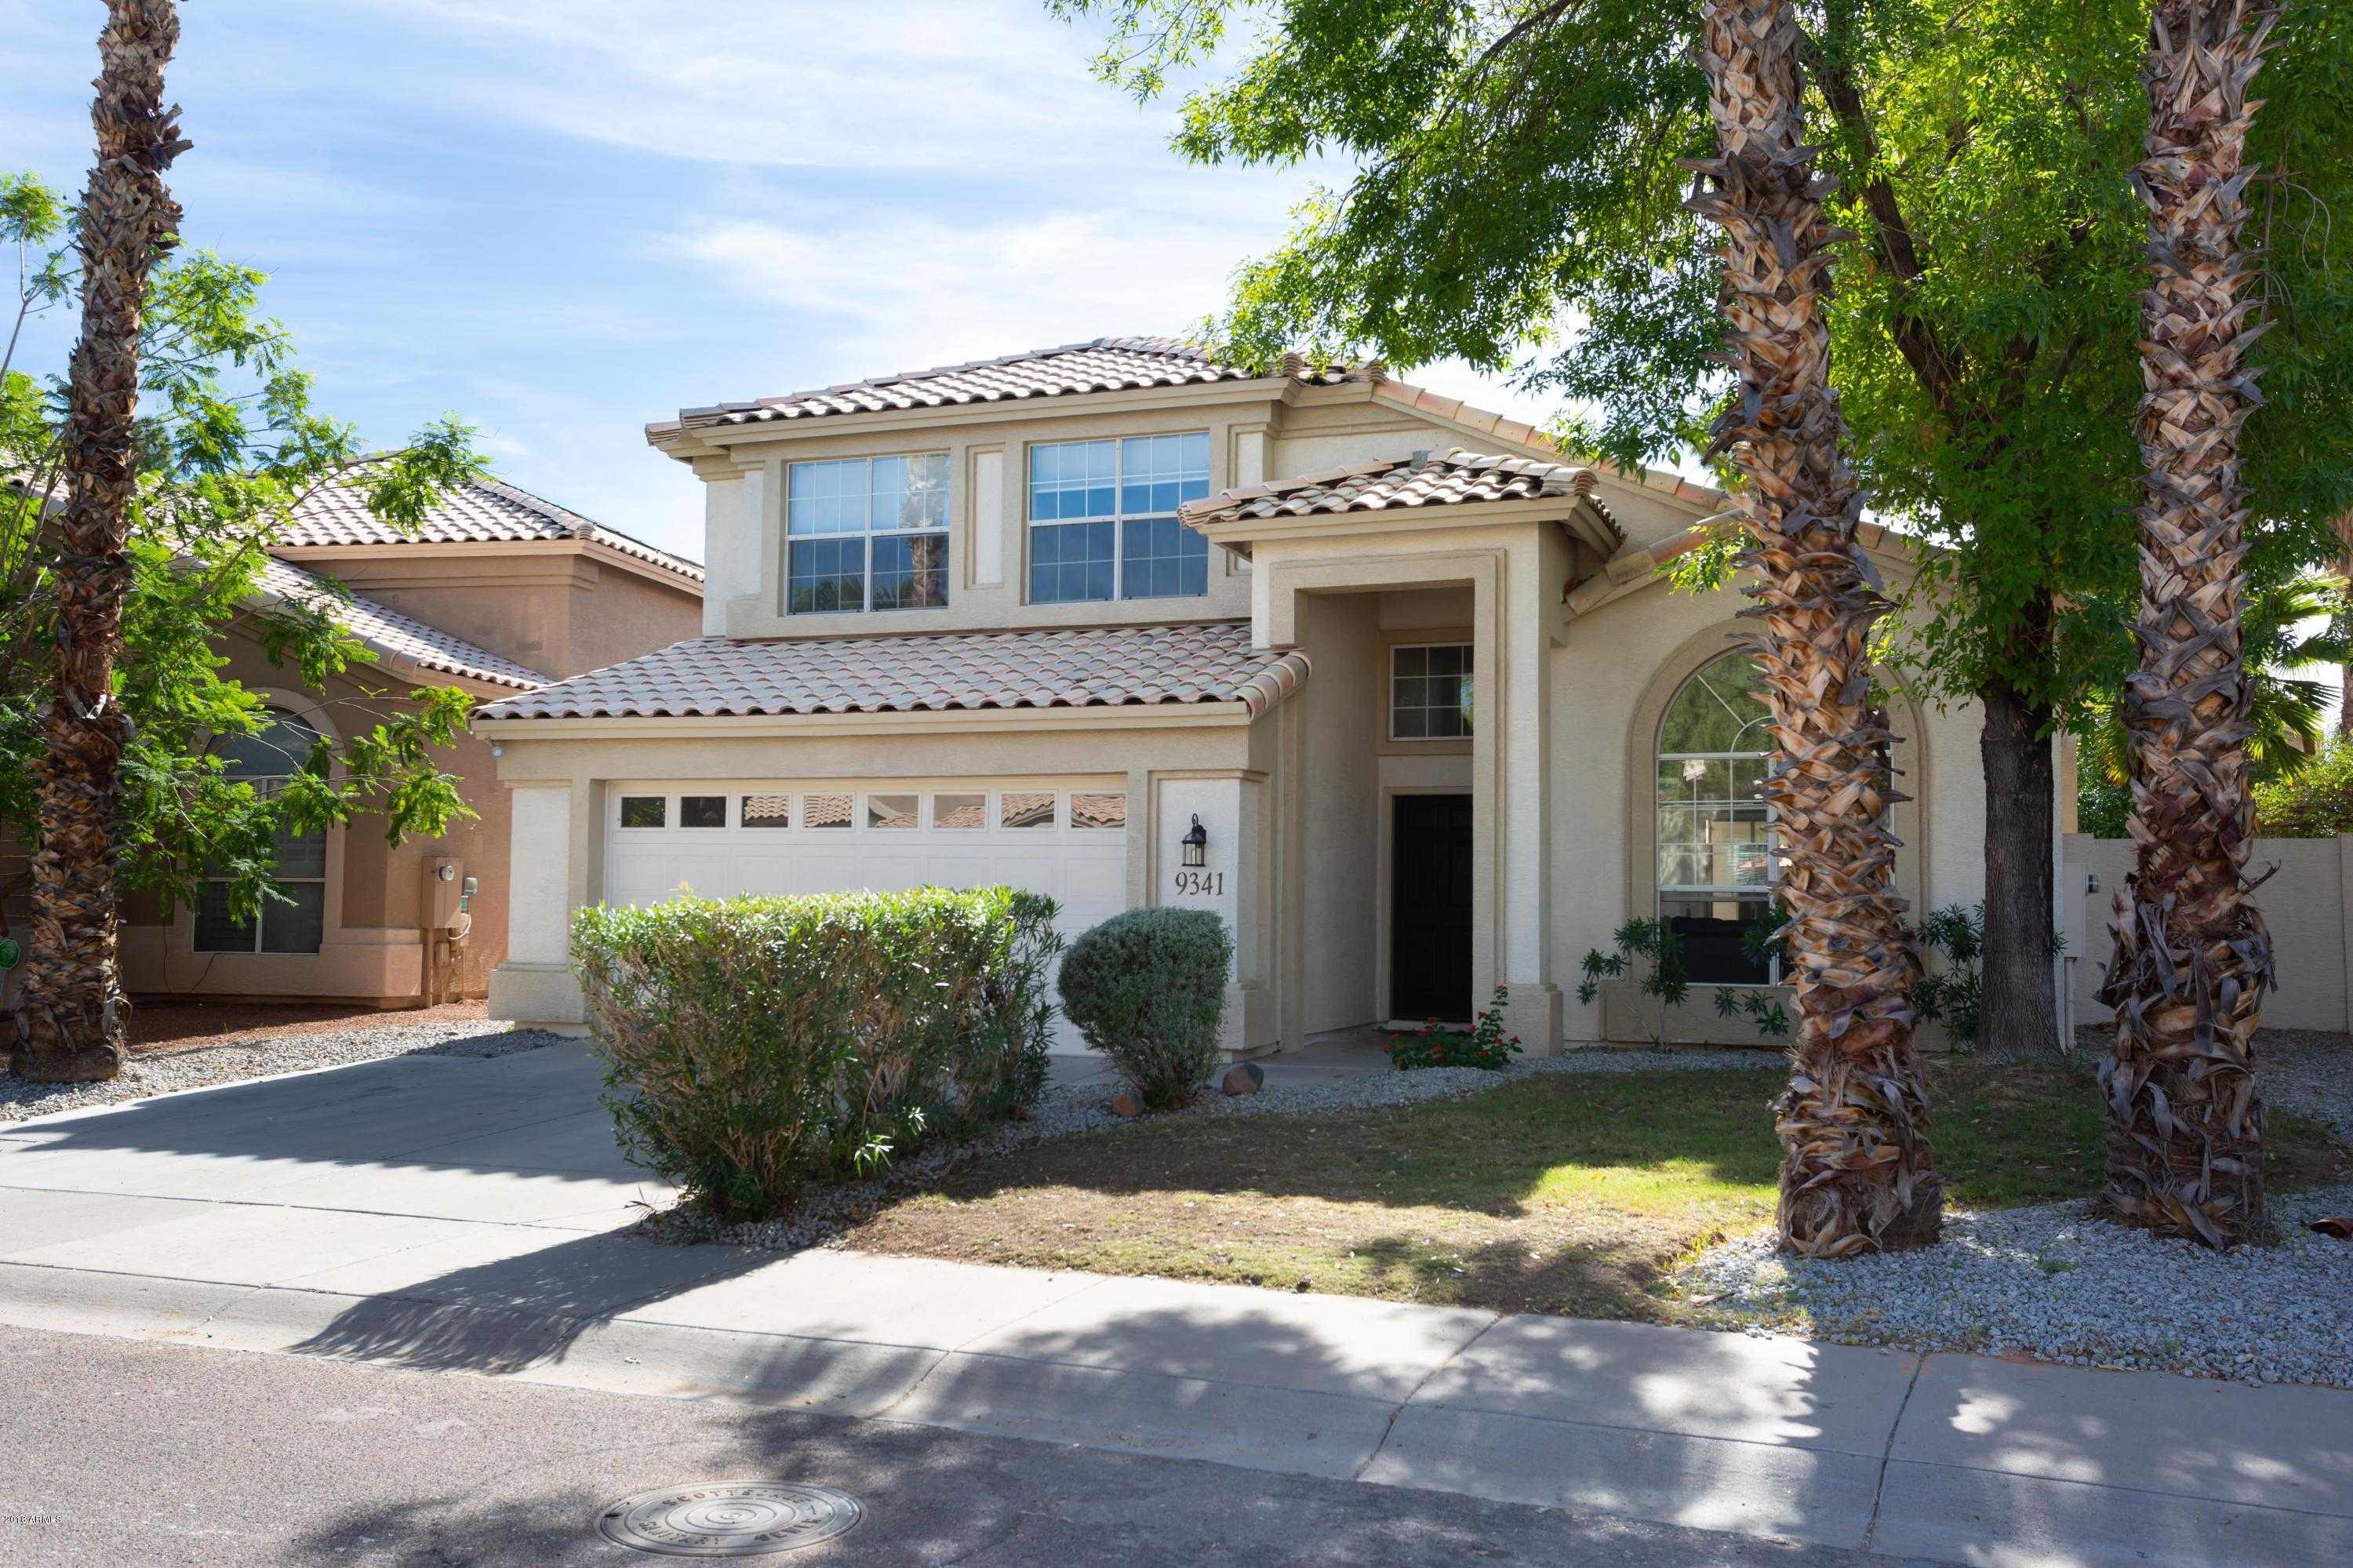 $535,000 - 4Br/3Ba - Home for Sale in Desert Shadows 3 Lot 87-159 Tr A-f, Scottsdale